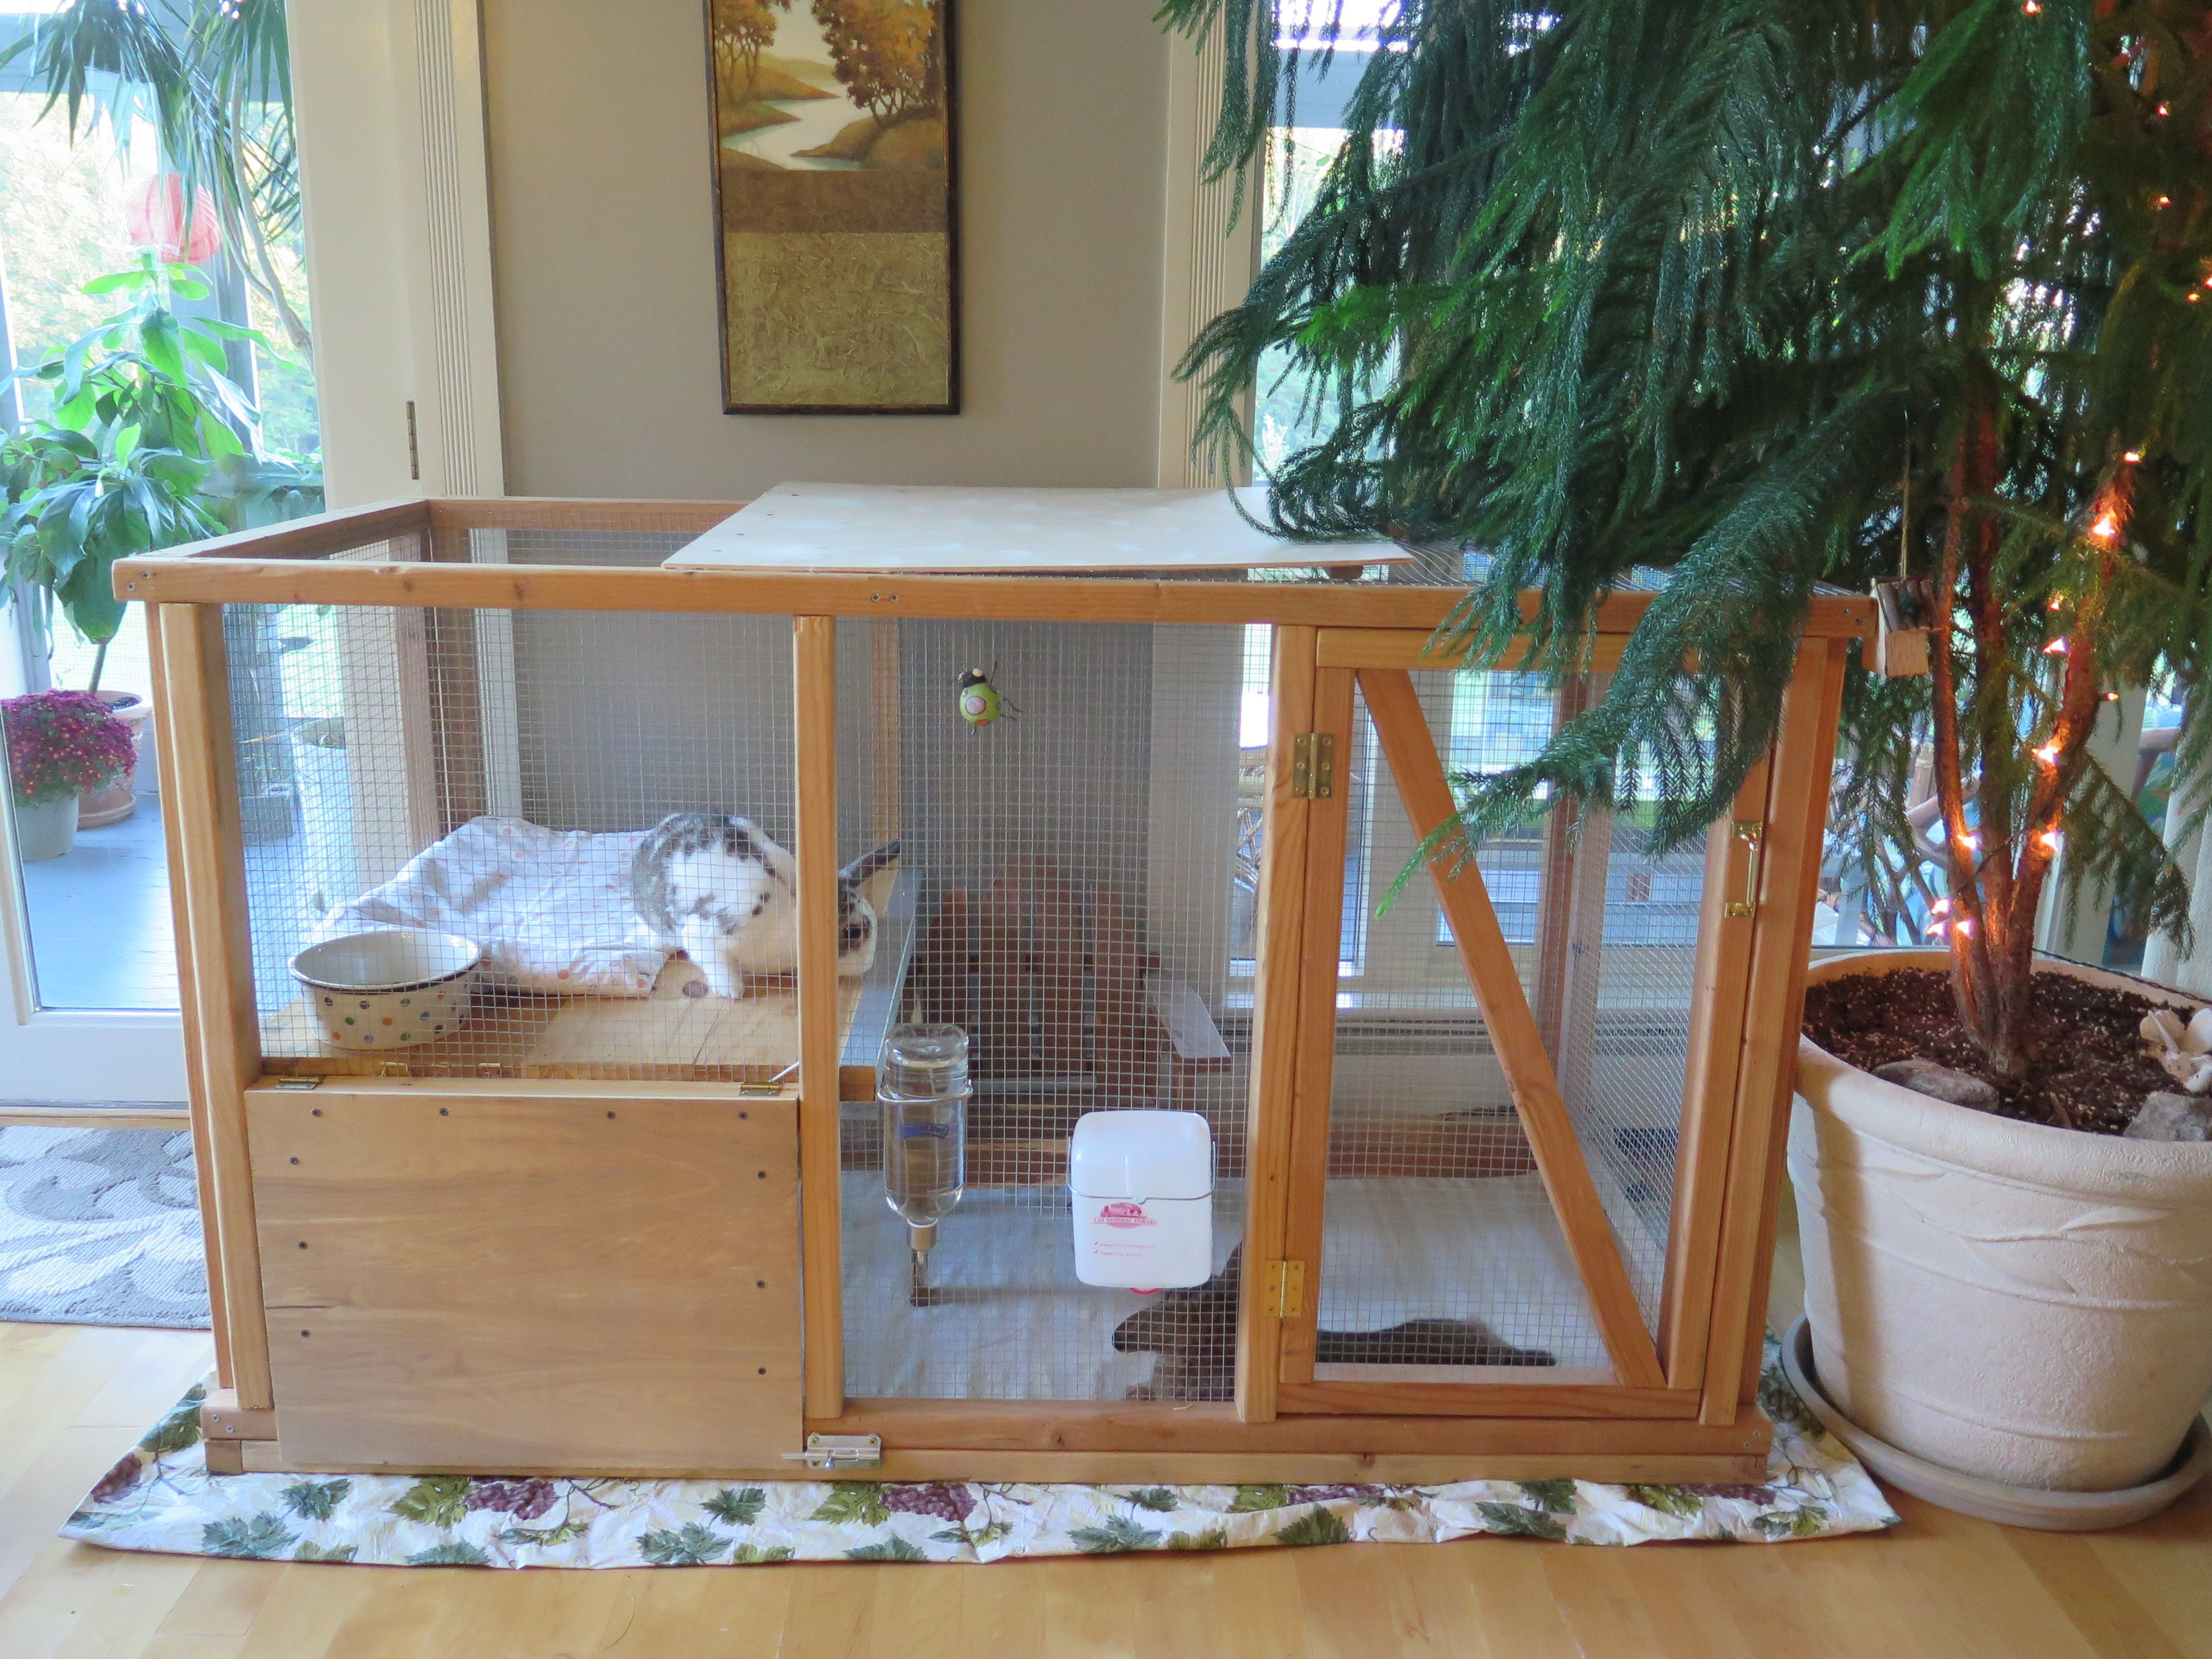 Pin on Home made Indoor Rabbit Pen